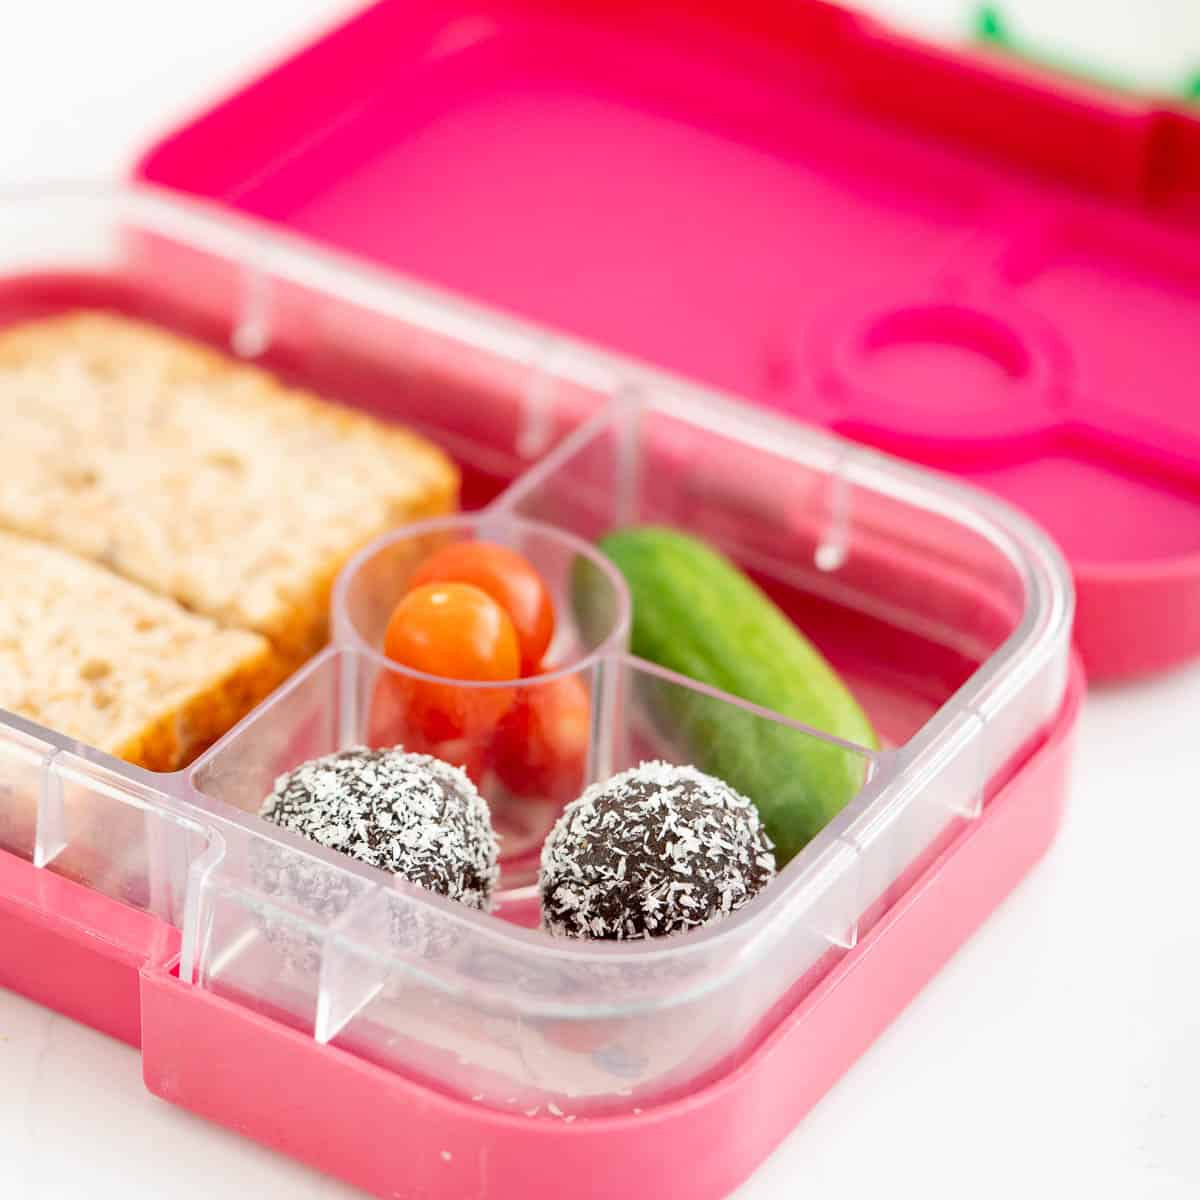 A pink bento box packed with chocolate bliss balls, cucumber, tomatoes and a sandwich.